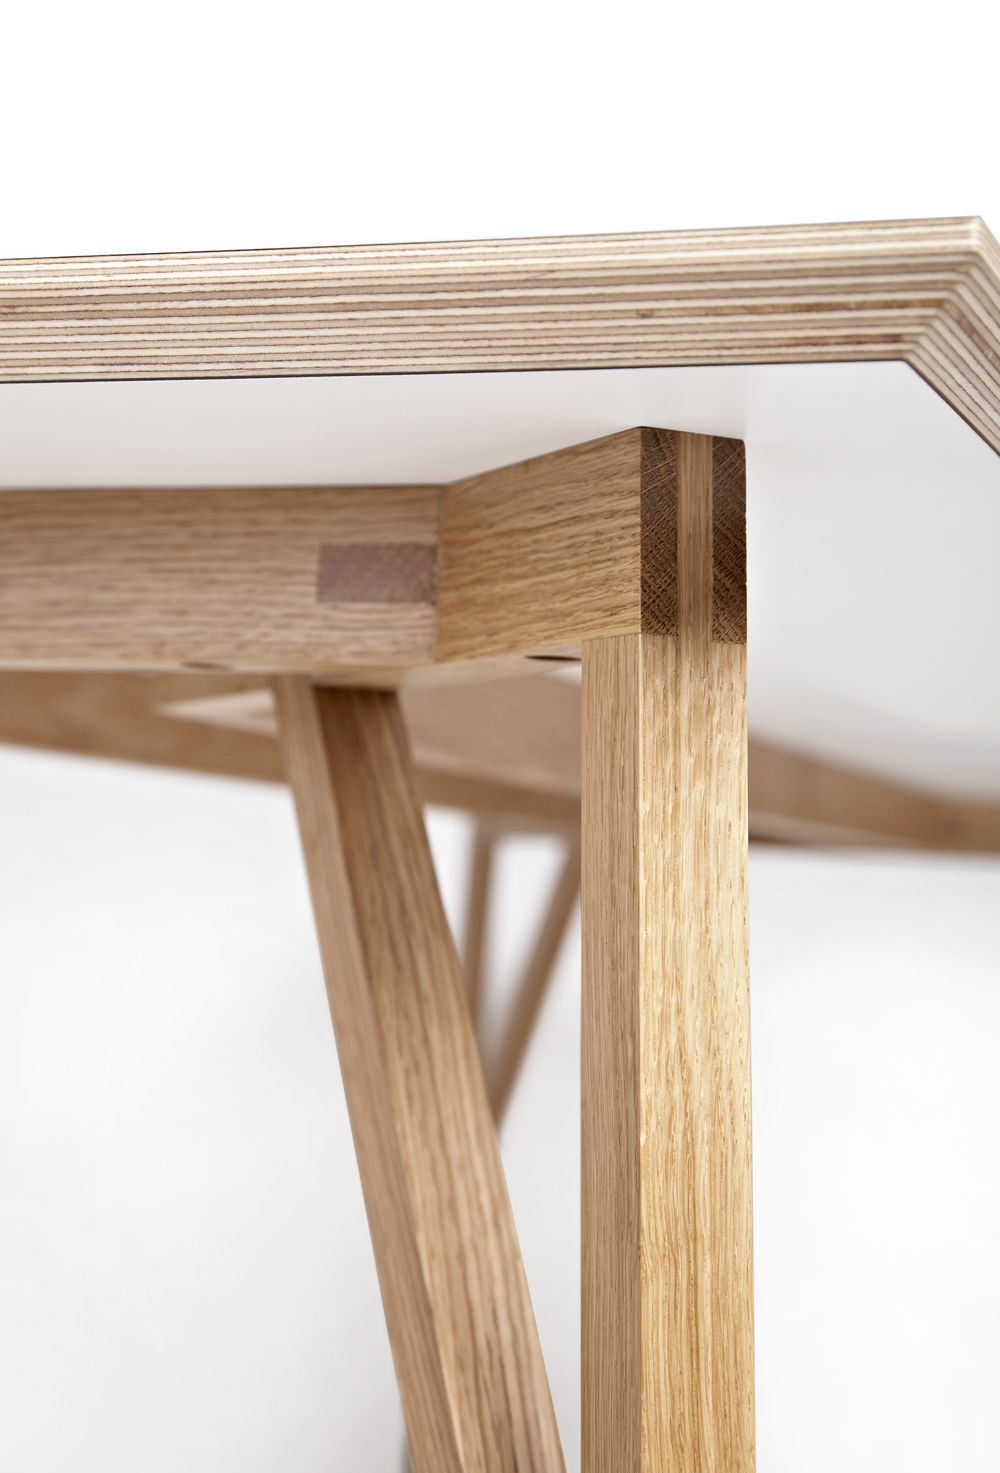 The Dt1 Table By Alexander Smith